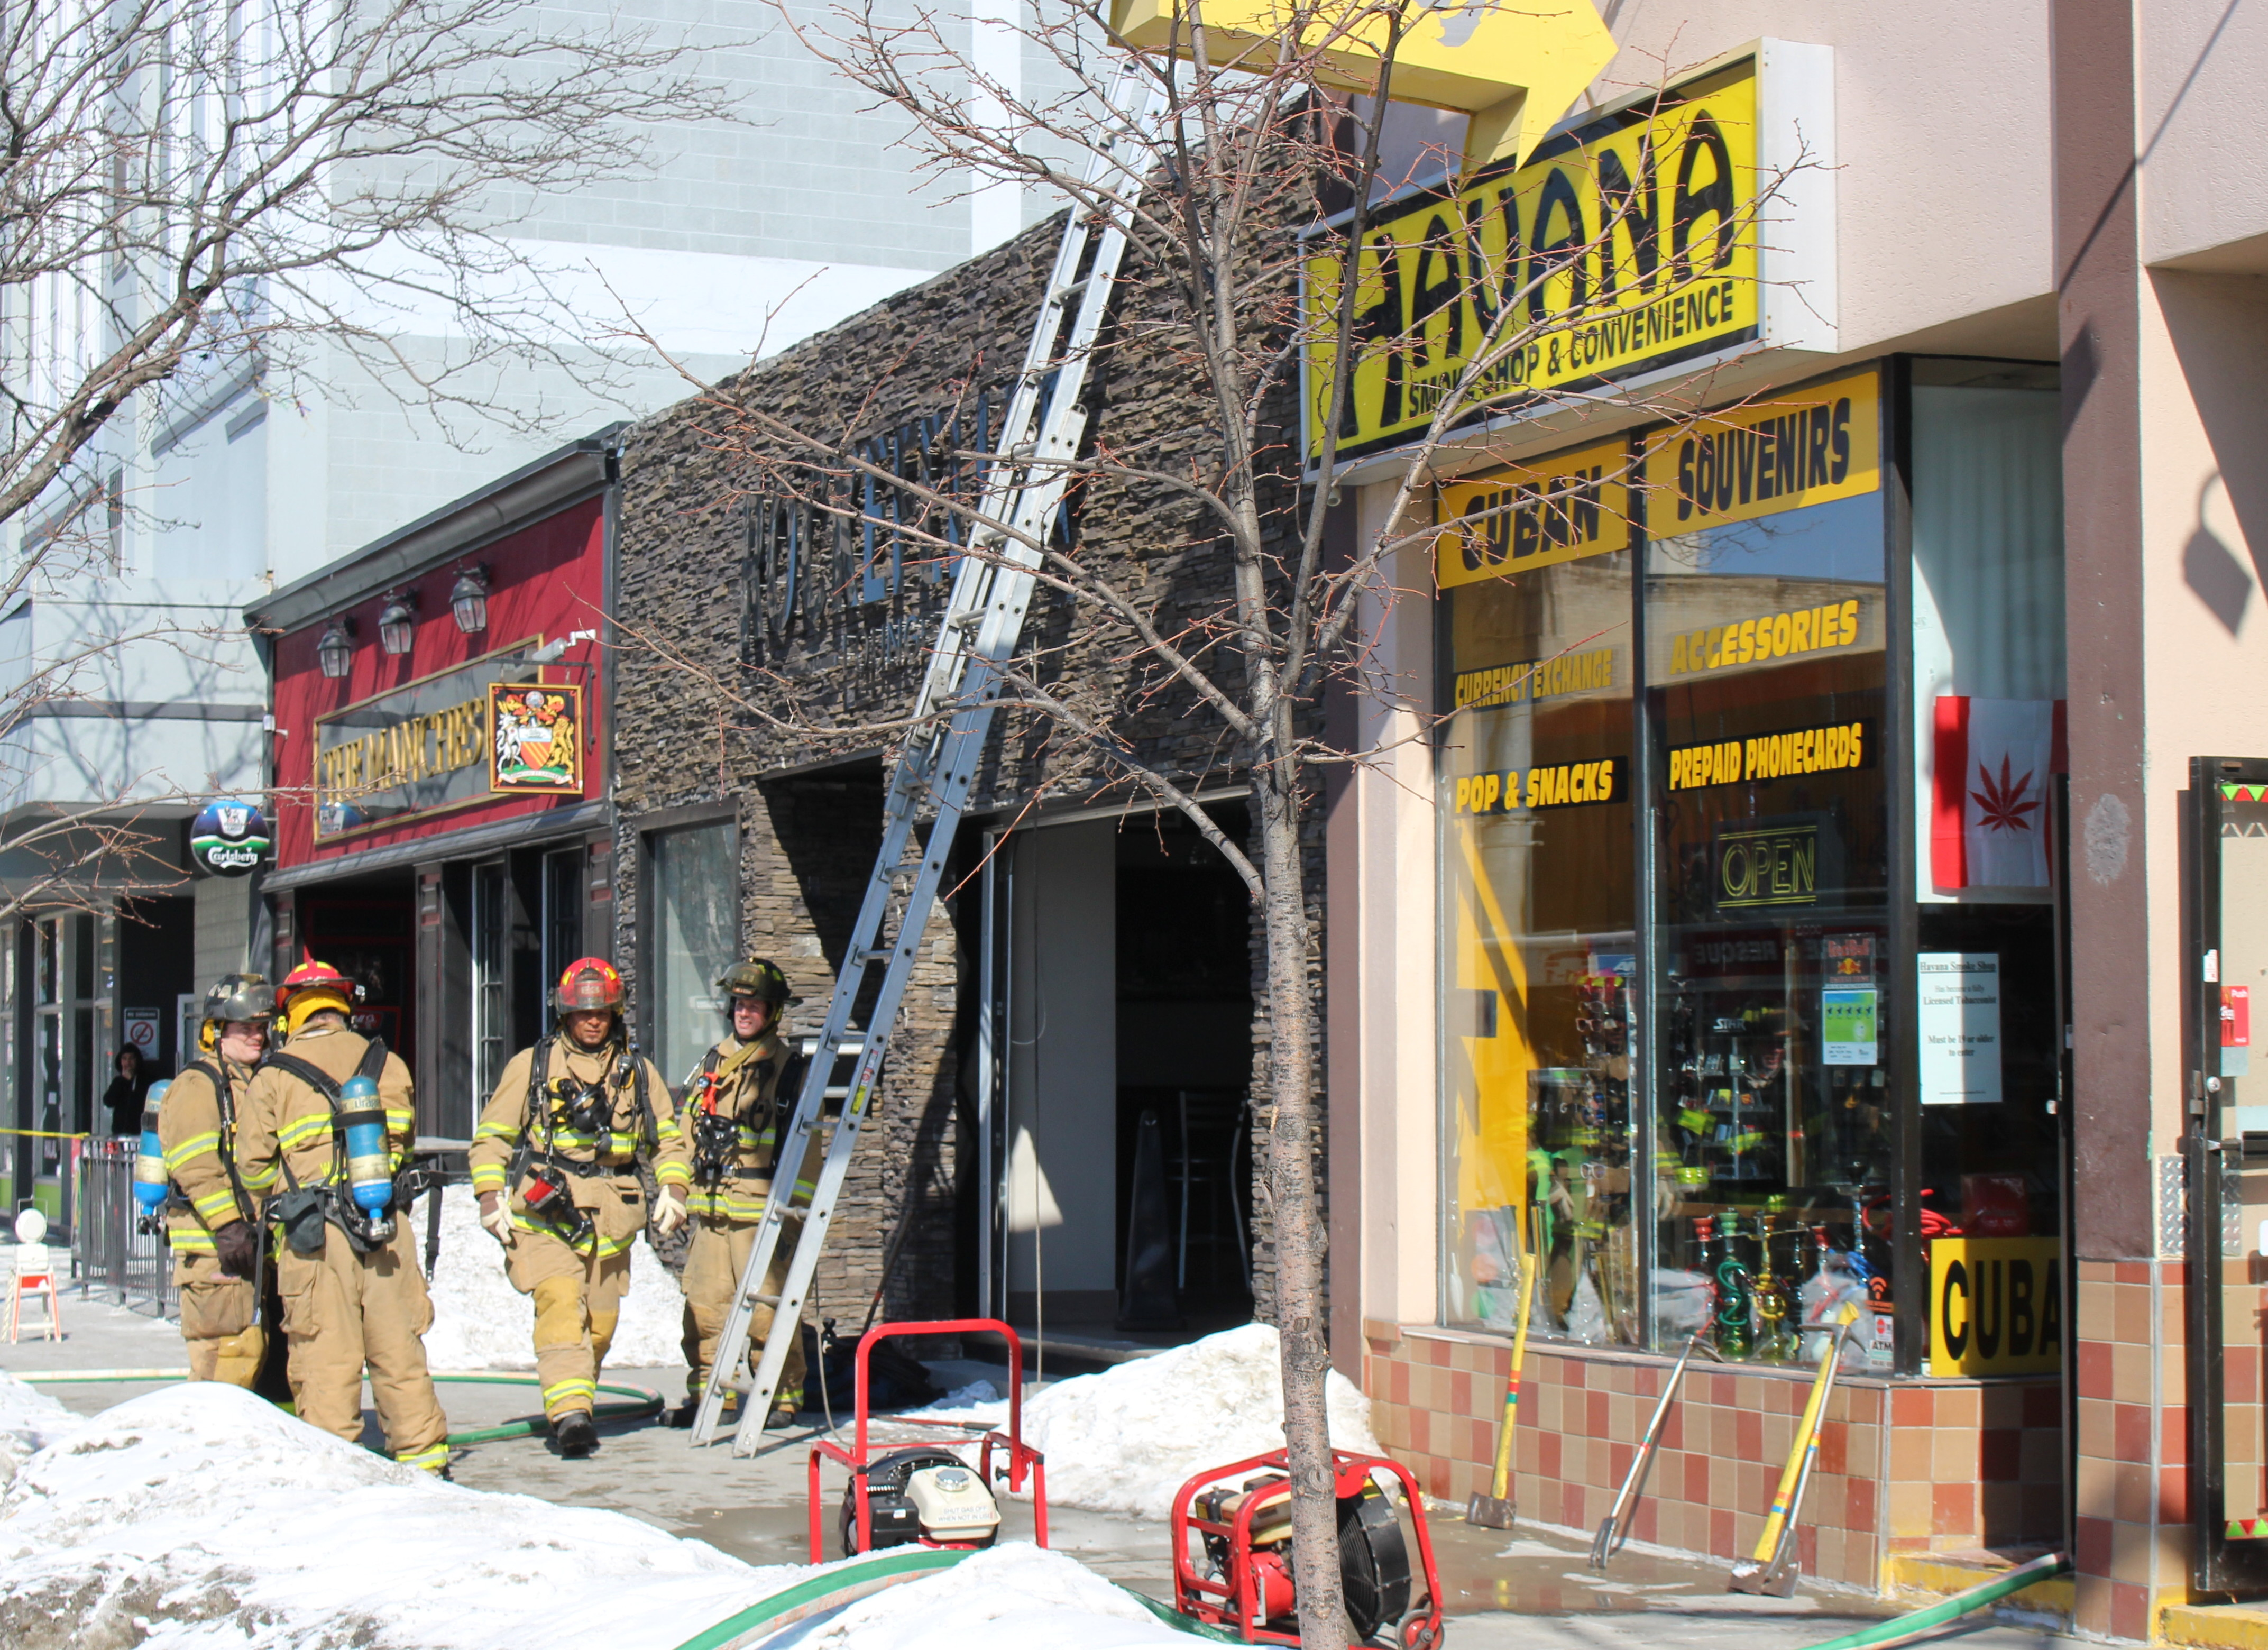 Windsor firefighters respond to a blaze at Havana Smoke Shop & Convenience in the 500-block of Ouellette Ave. downtown, February 23, 2015. (Photo by Mike Vlasveld)